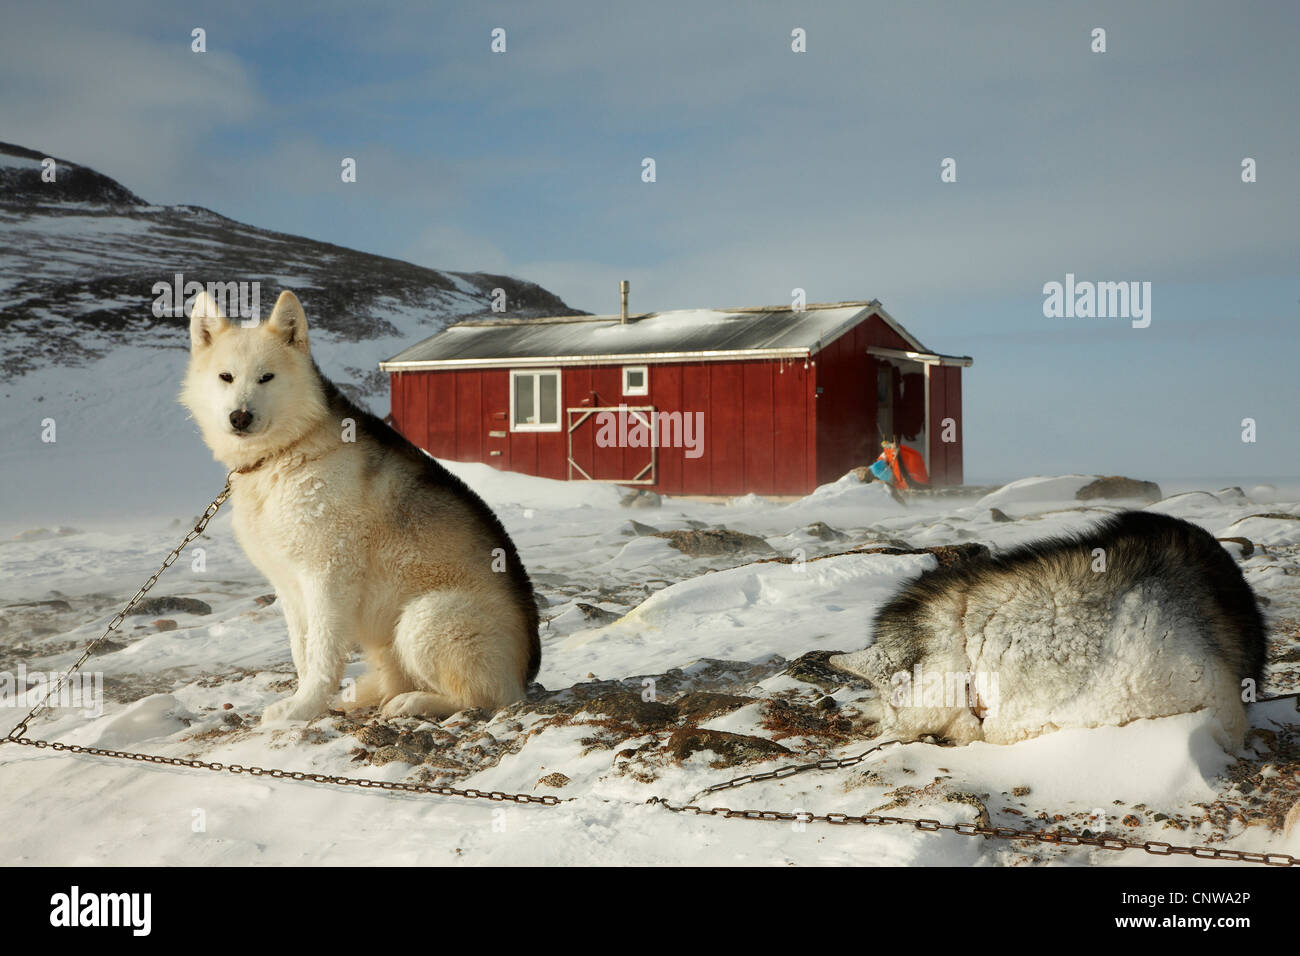 Greenland Dog (Canis lupus f. familiaris), two chained sledge dogs at hunting lodge in evening light, Greenland, - Stock Image